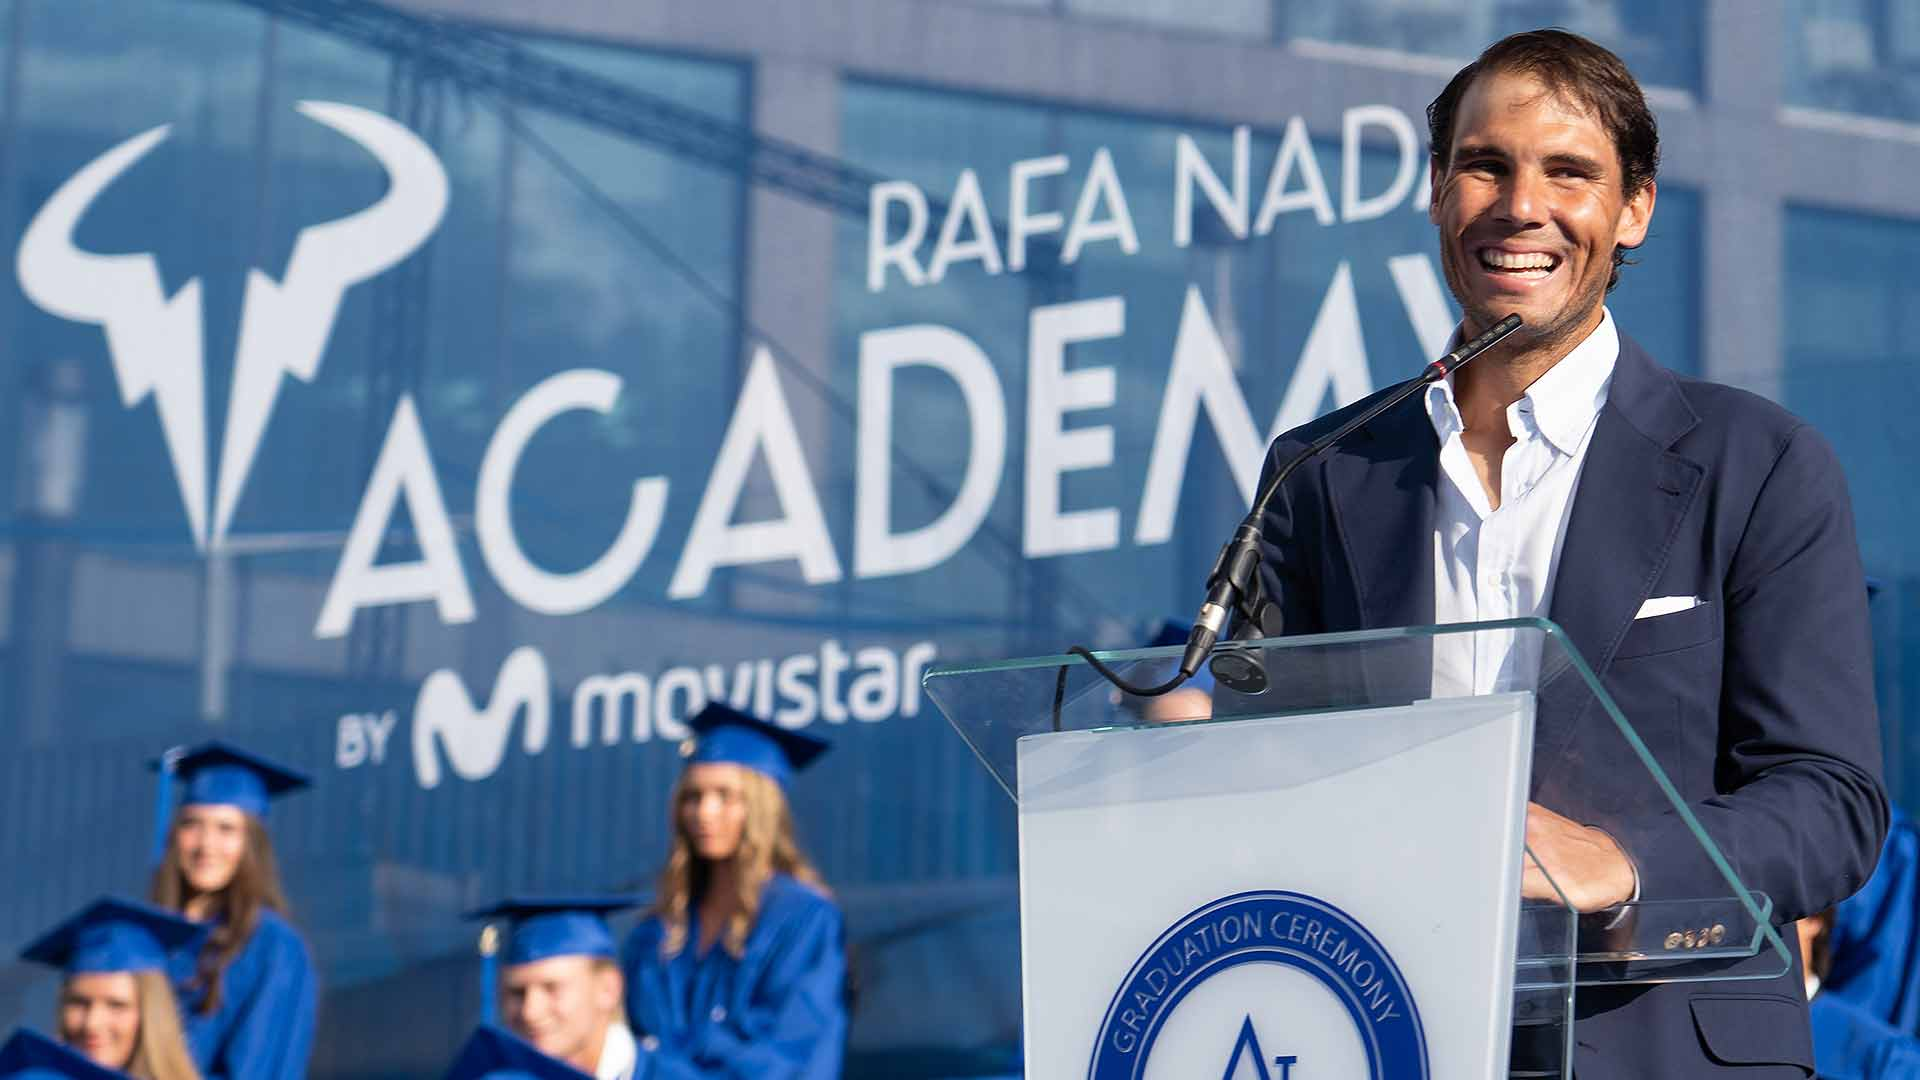 Rafael Nadal speaks at the commencement ceremony for the 2019 graduating class of the Rafa Nadal Academy by Movistar